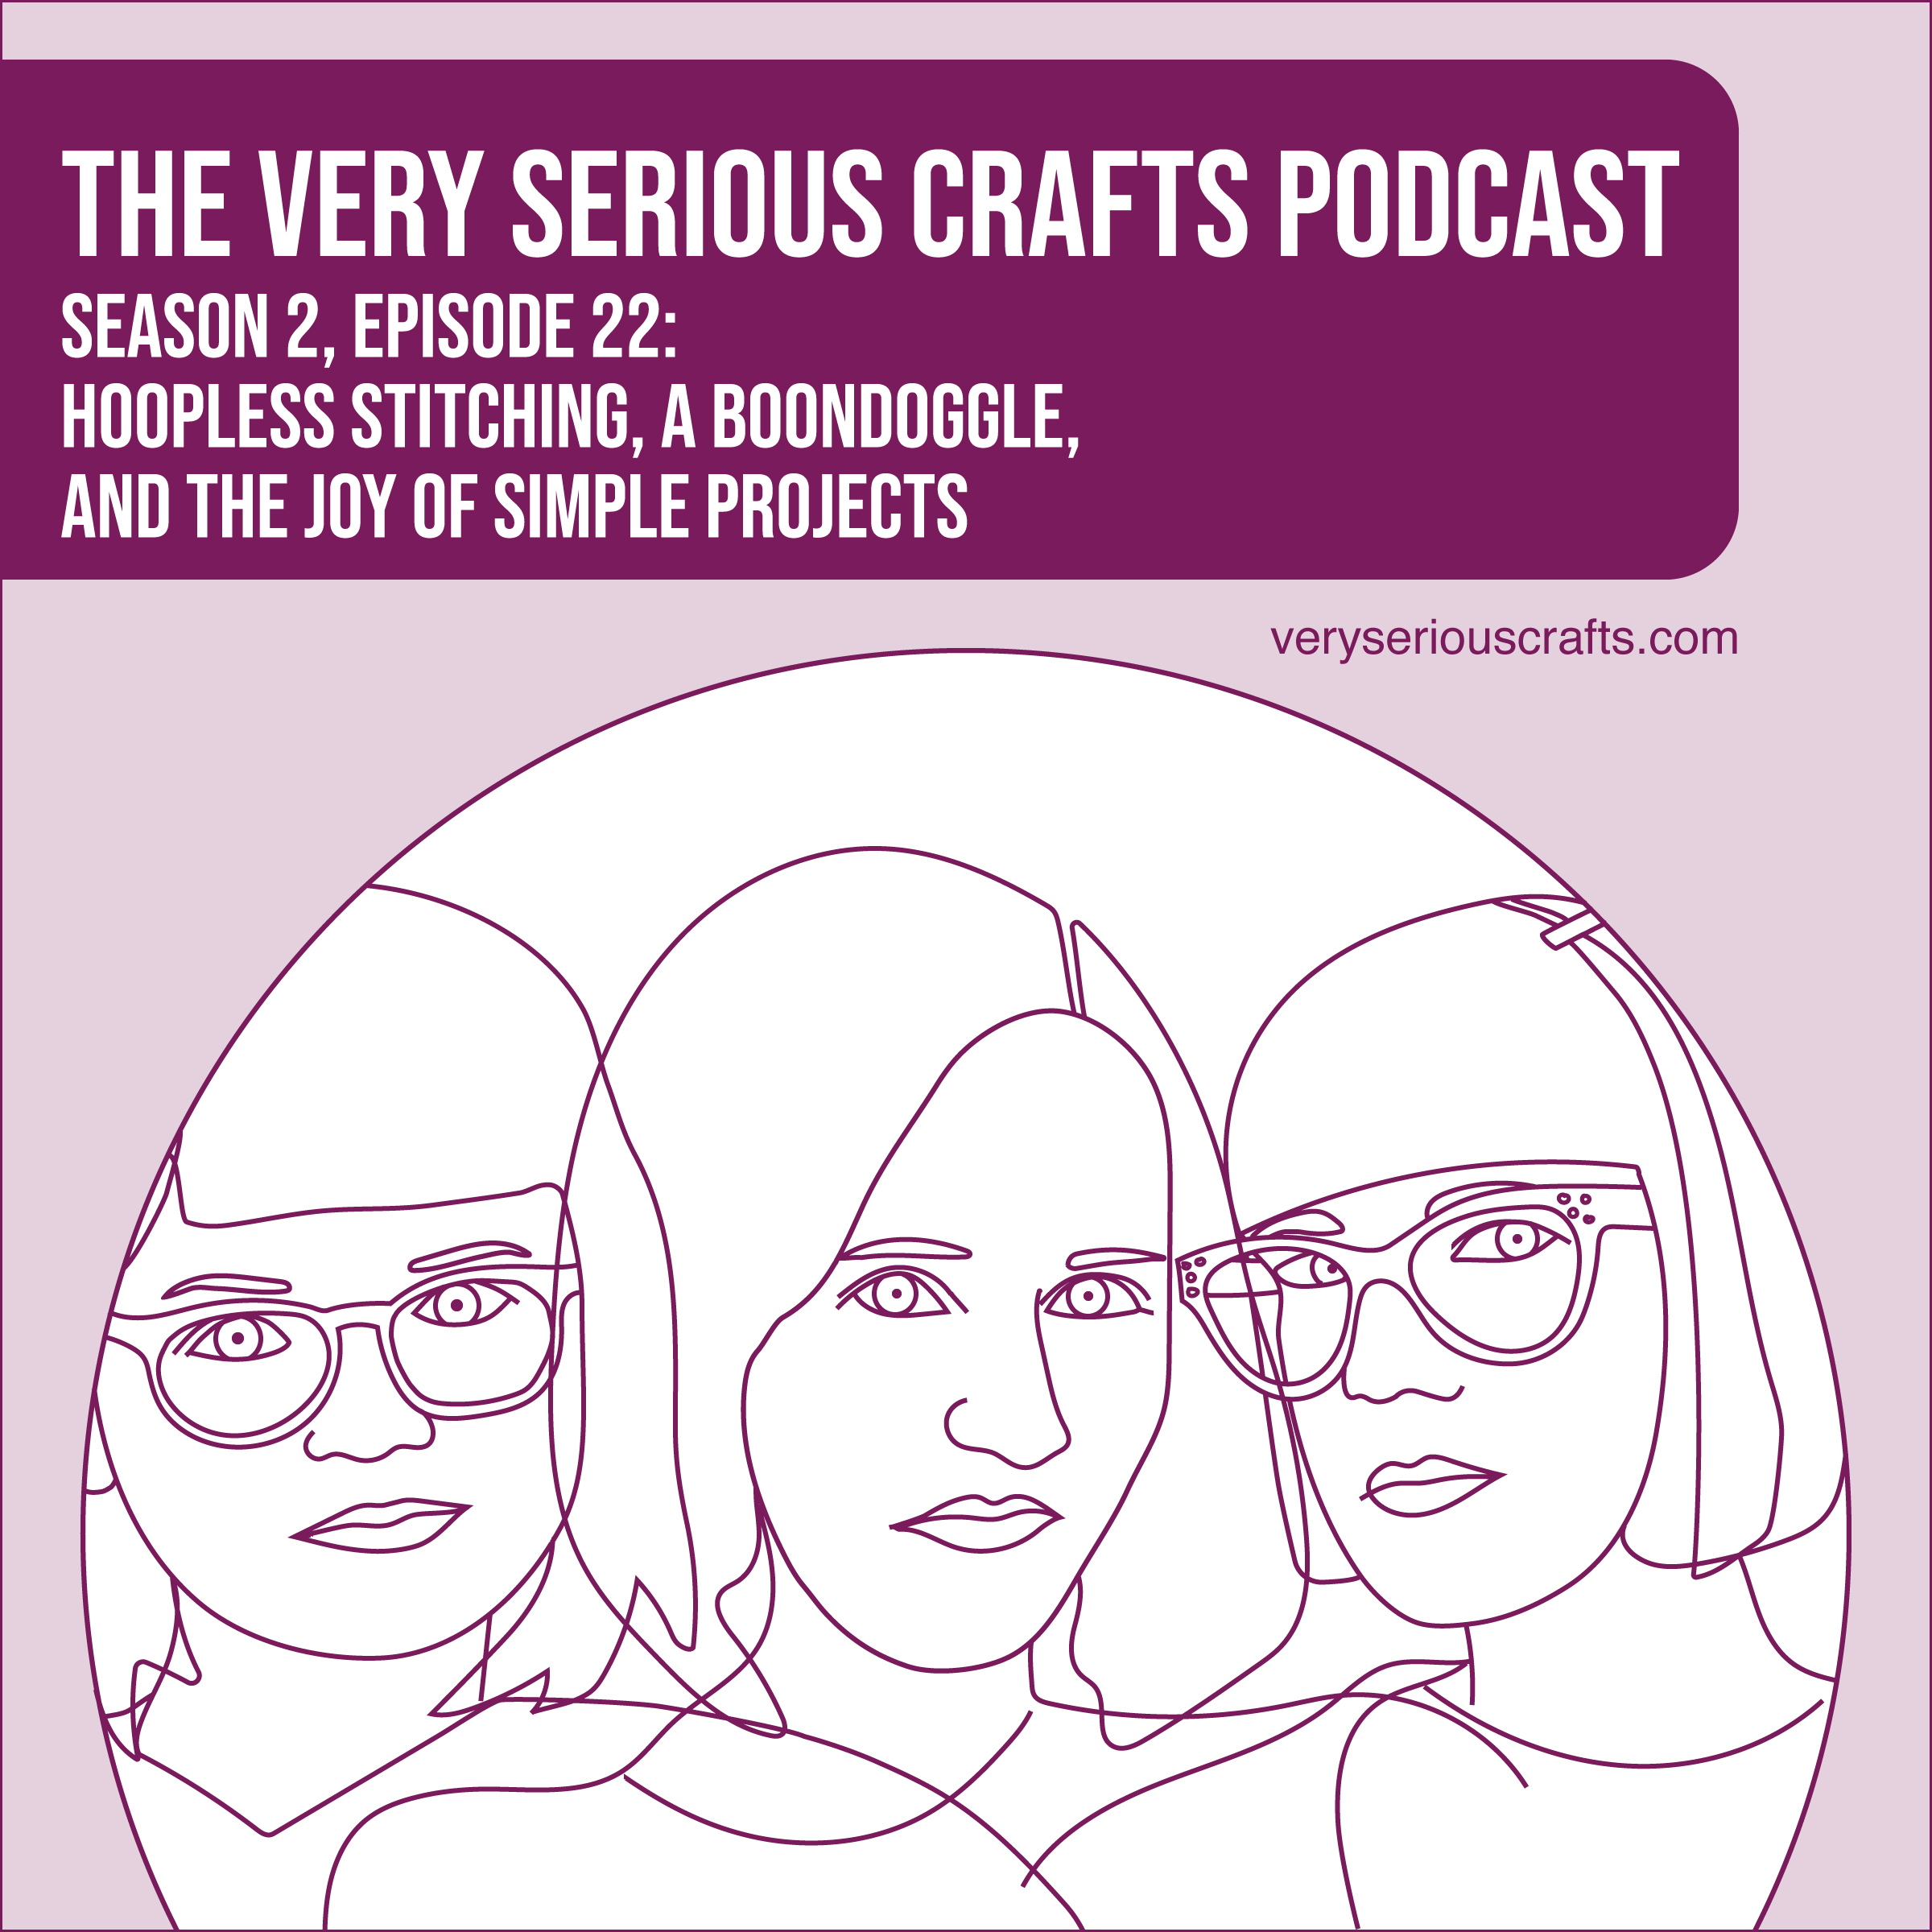 The Very Serious Crafts Podcast, Season 2: Episode 22, Hoopless Stitching, a Boondoggle, and the Joy of Simple Projects